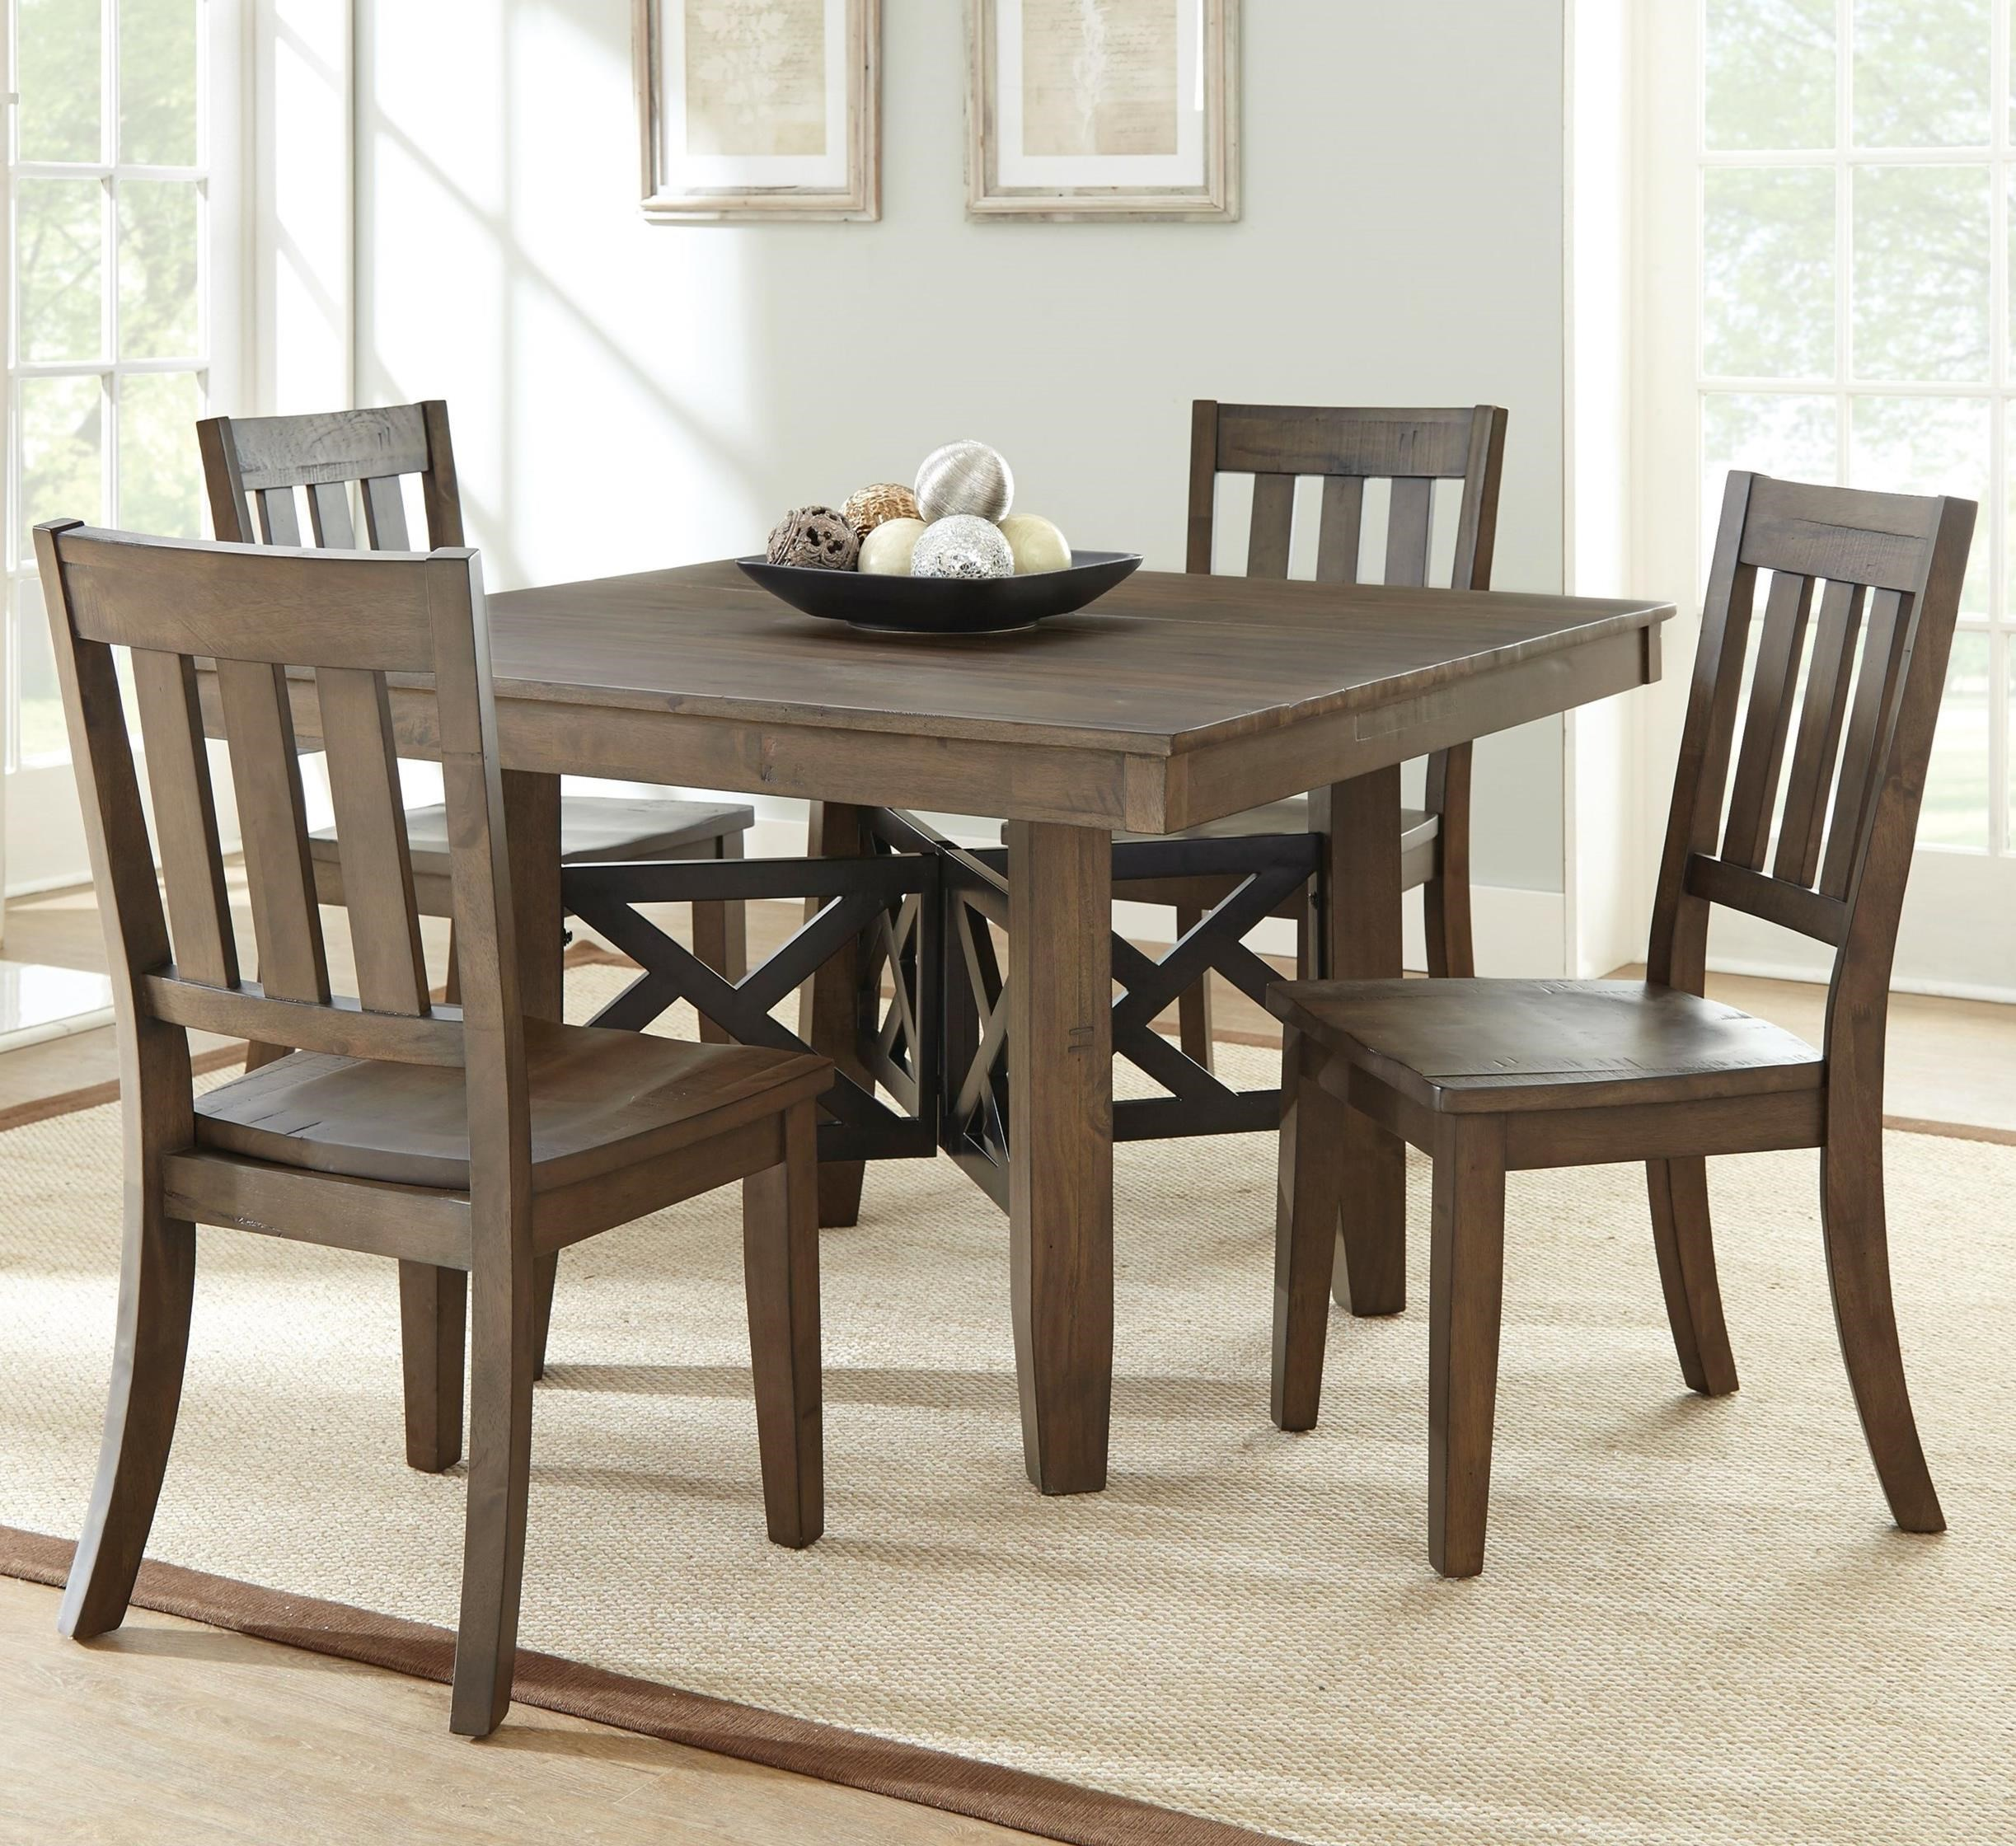 Picture of: Steve Silver Mayla Rustic Wood 5 Piece Table Set Wayside Furniture Dining 5 Piece Sets